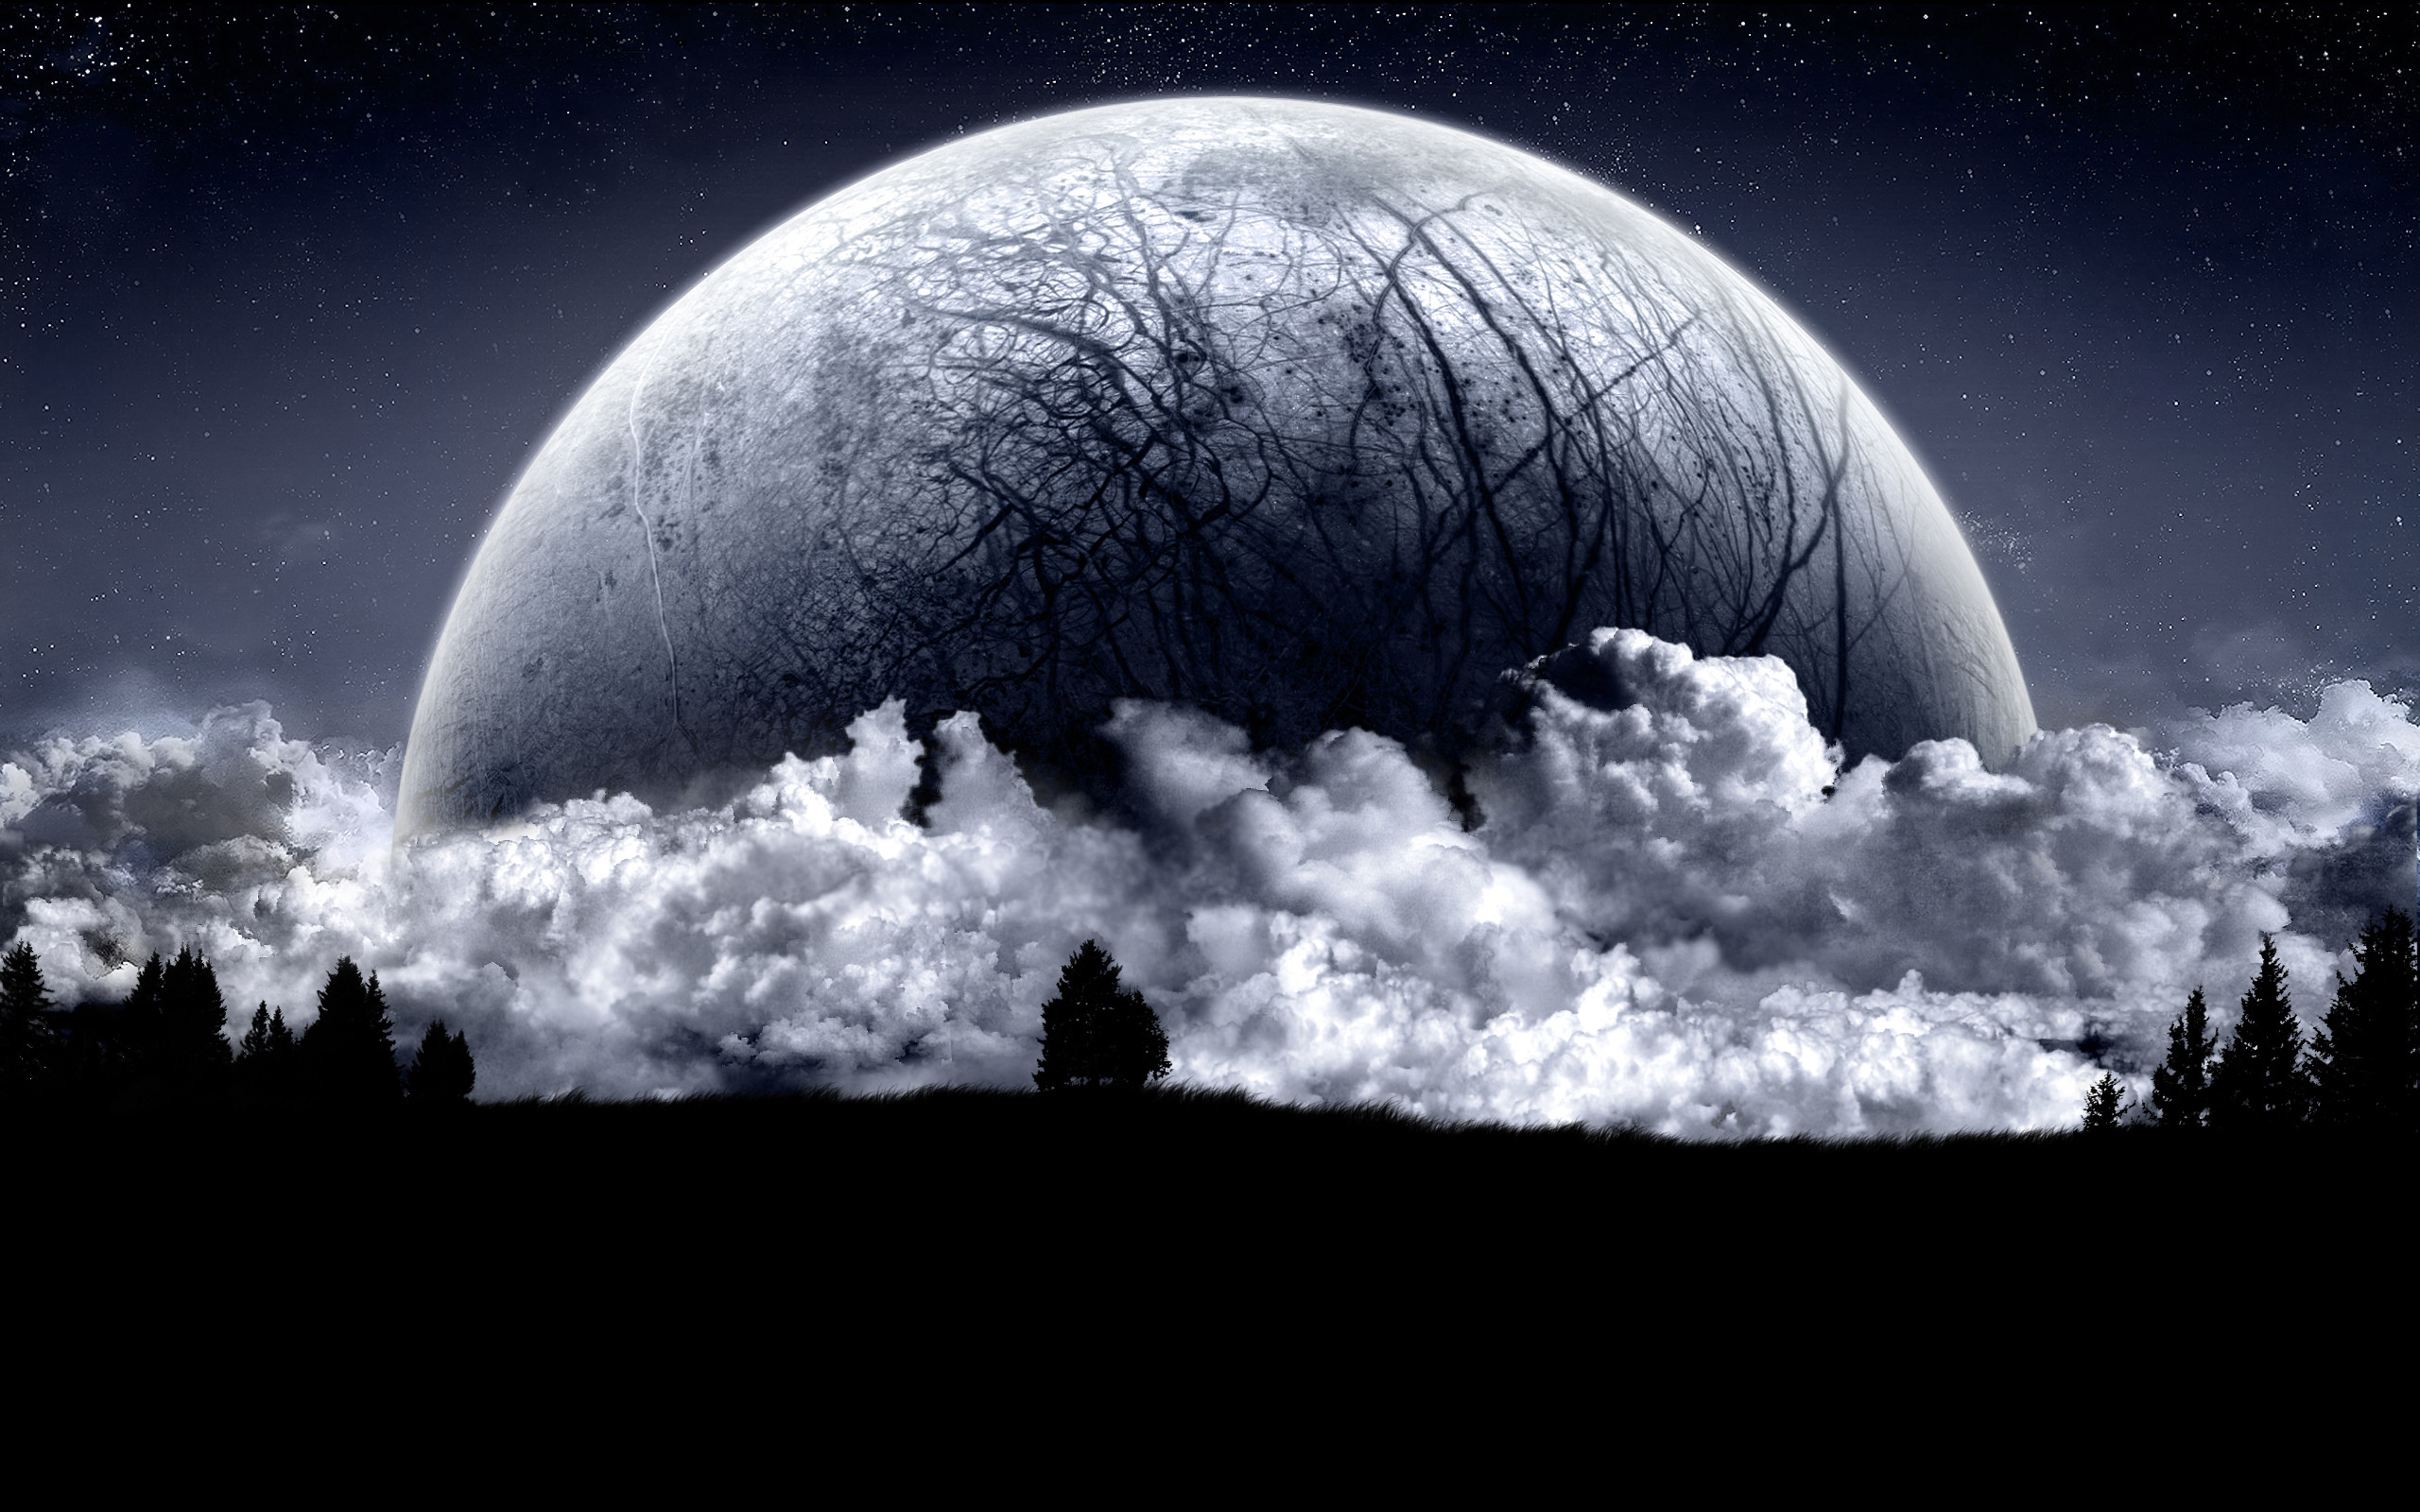 Dark Moon. We have many Moon Picture photos such as: Dark Moon, .